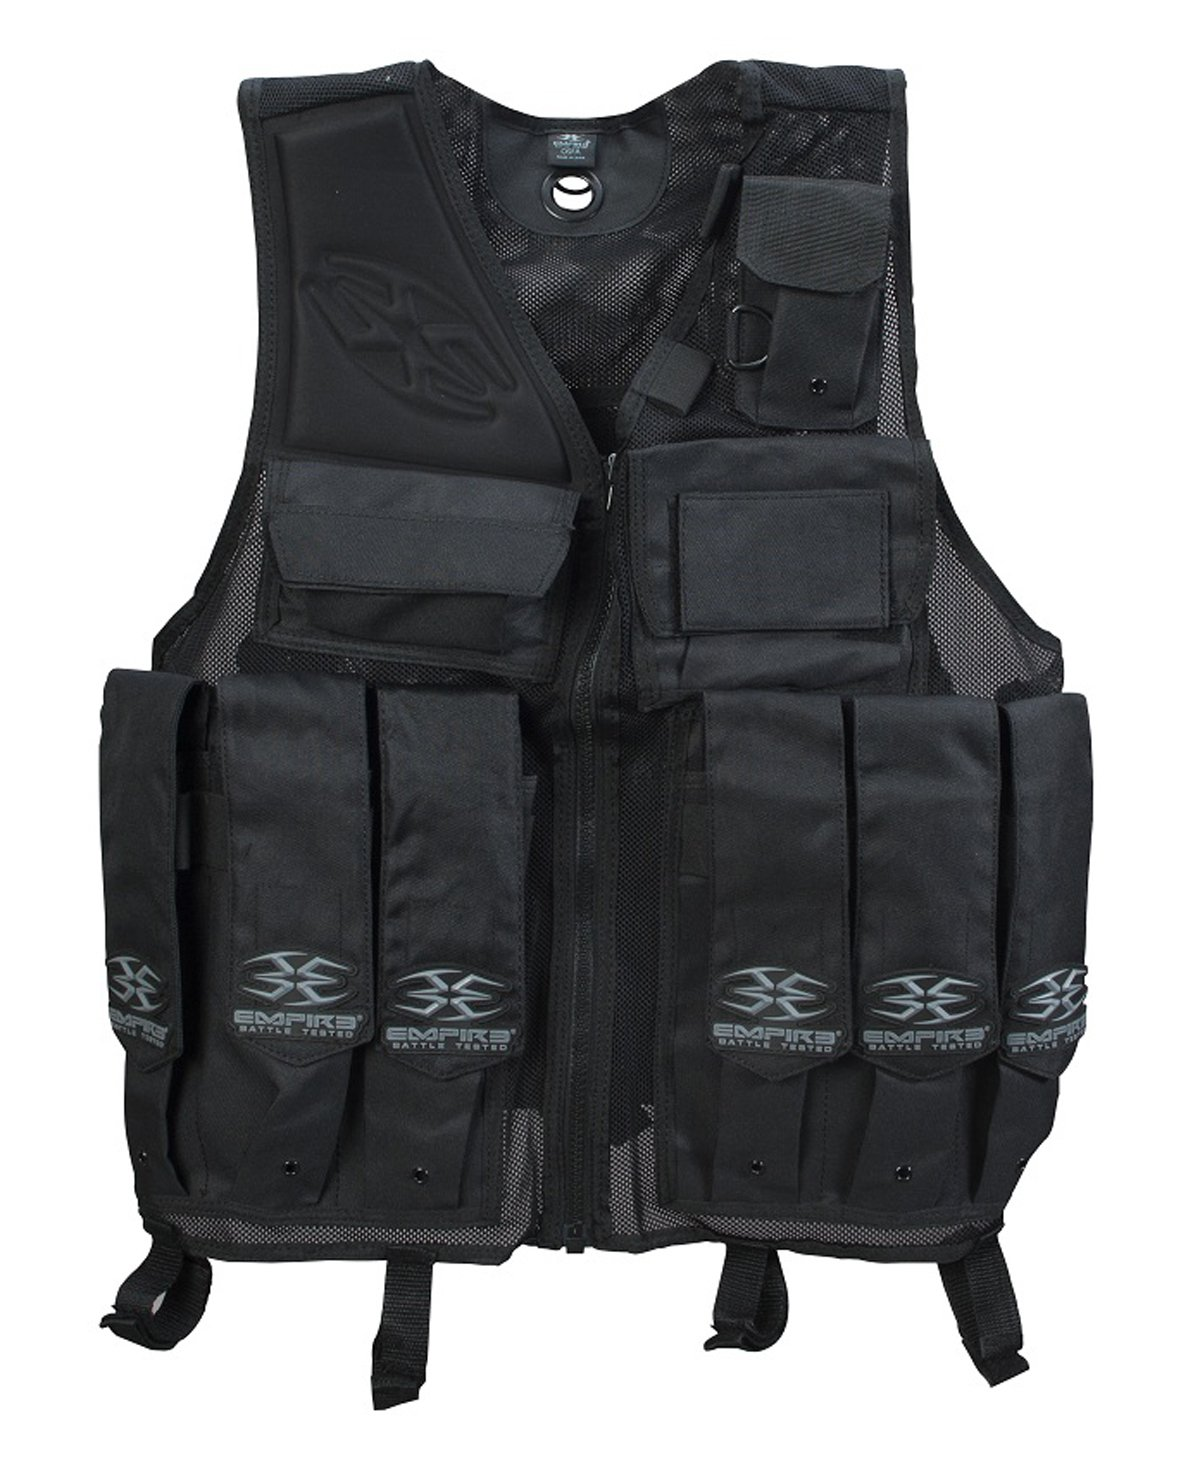 Empire Battle Tested Paintball Battle Vest